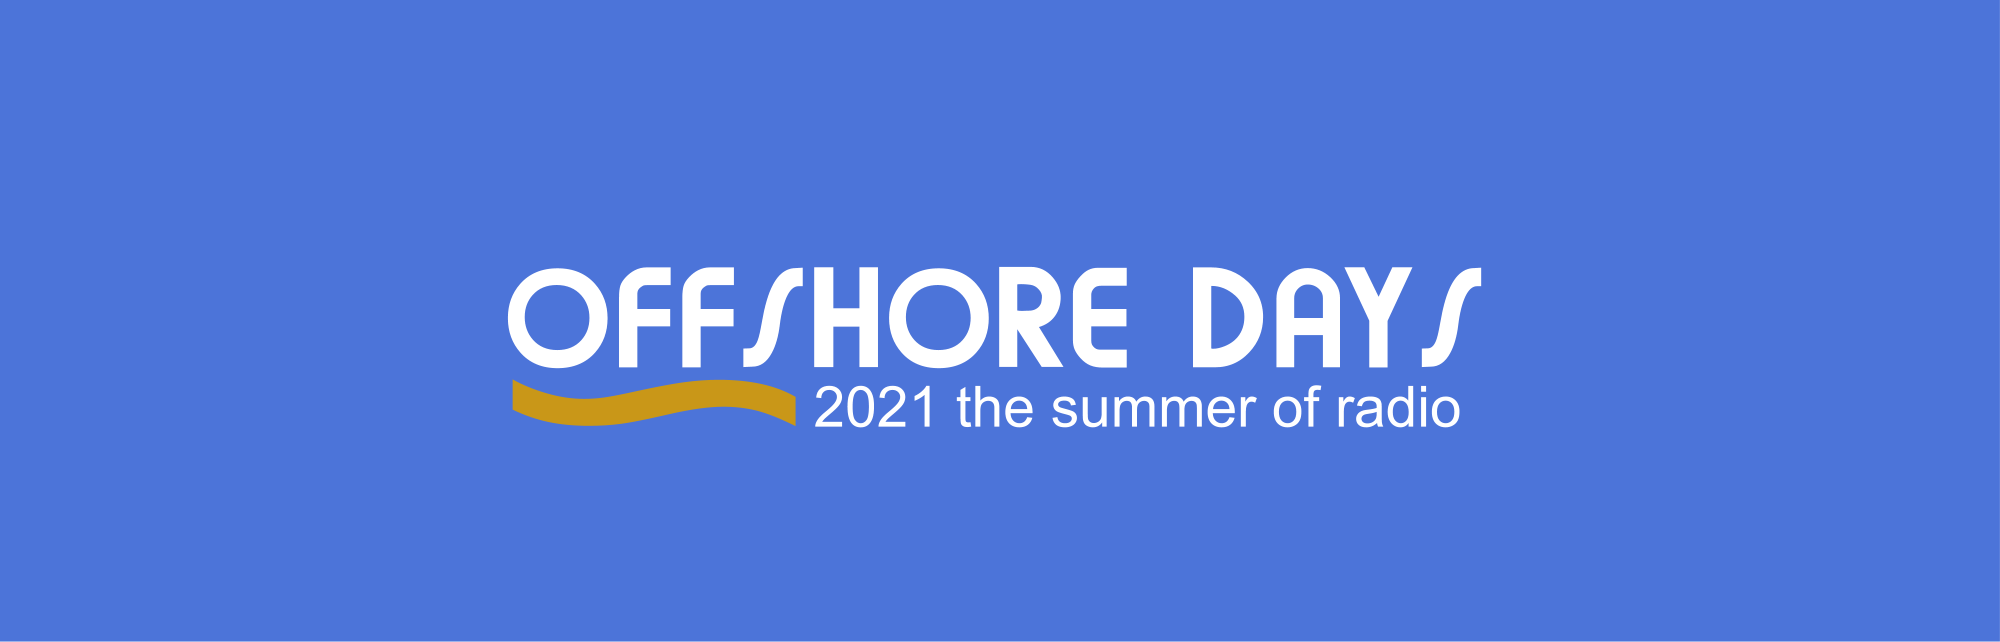 Offshore Days 2021